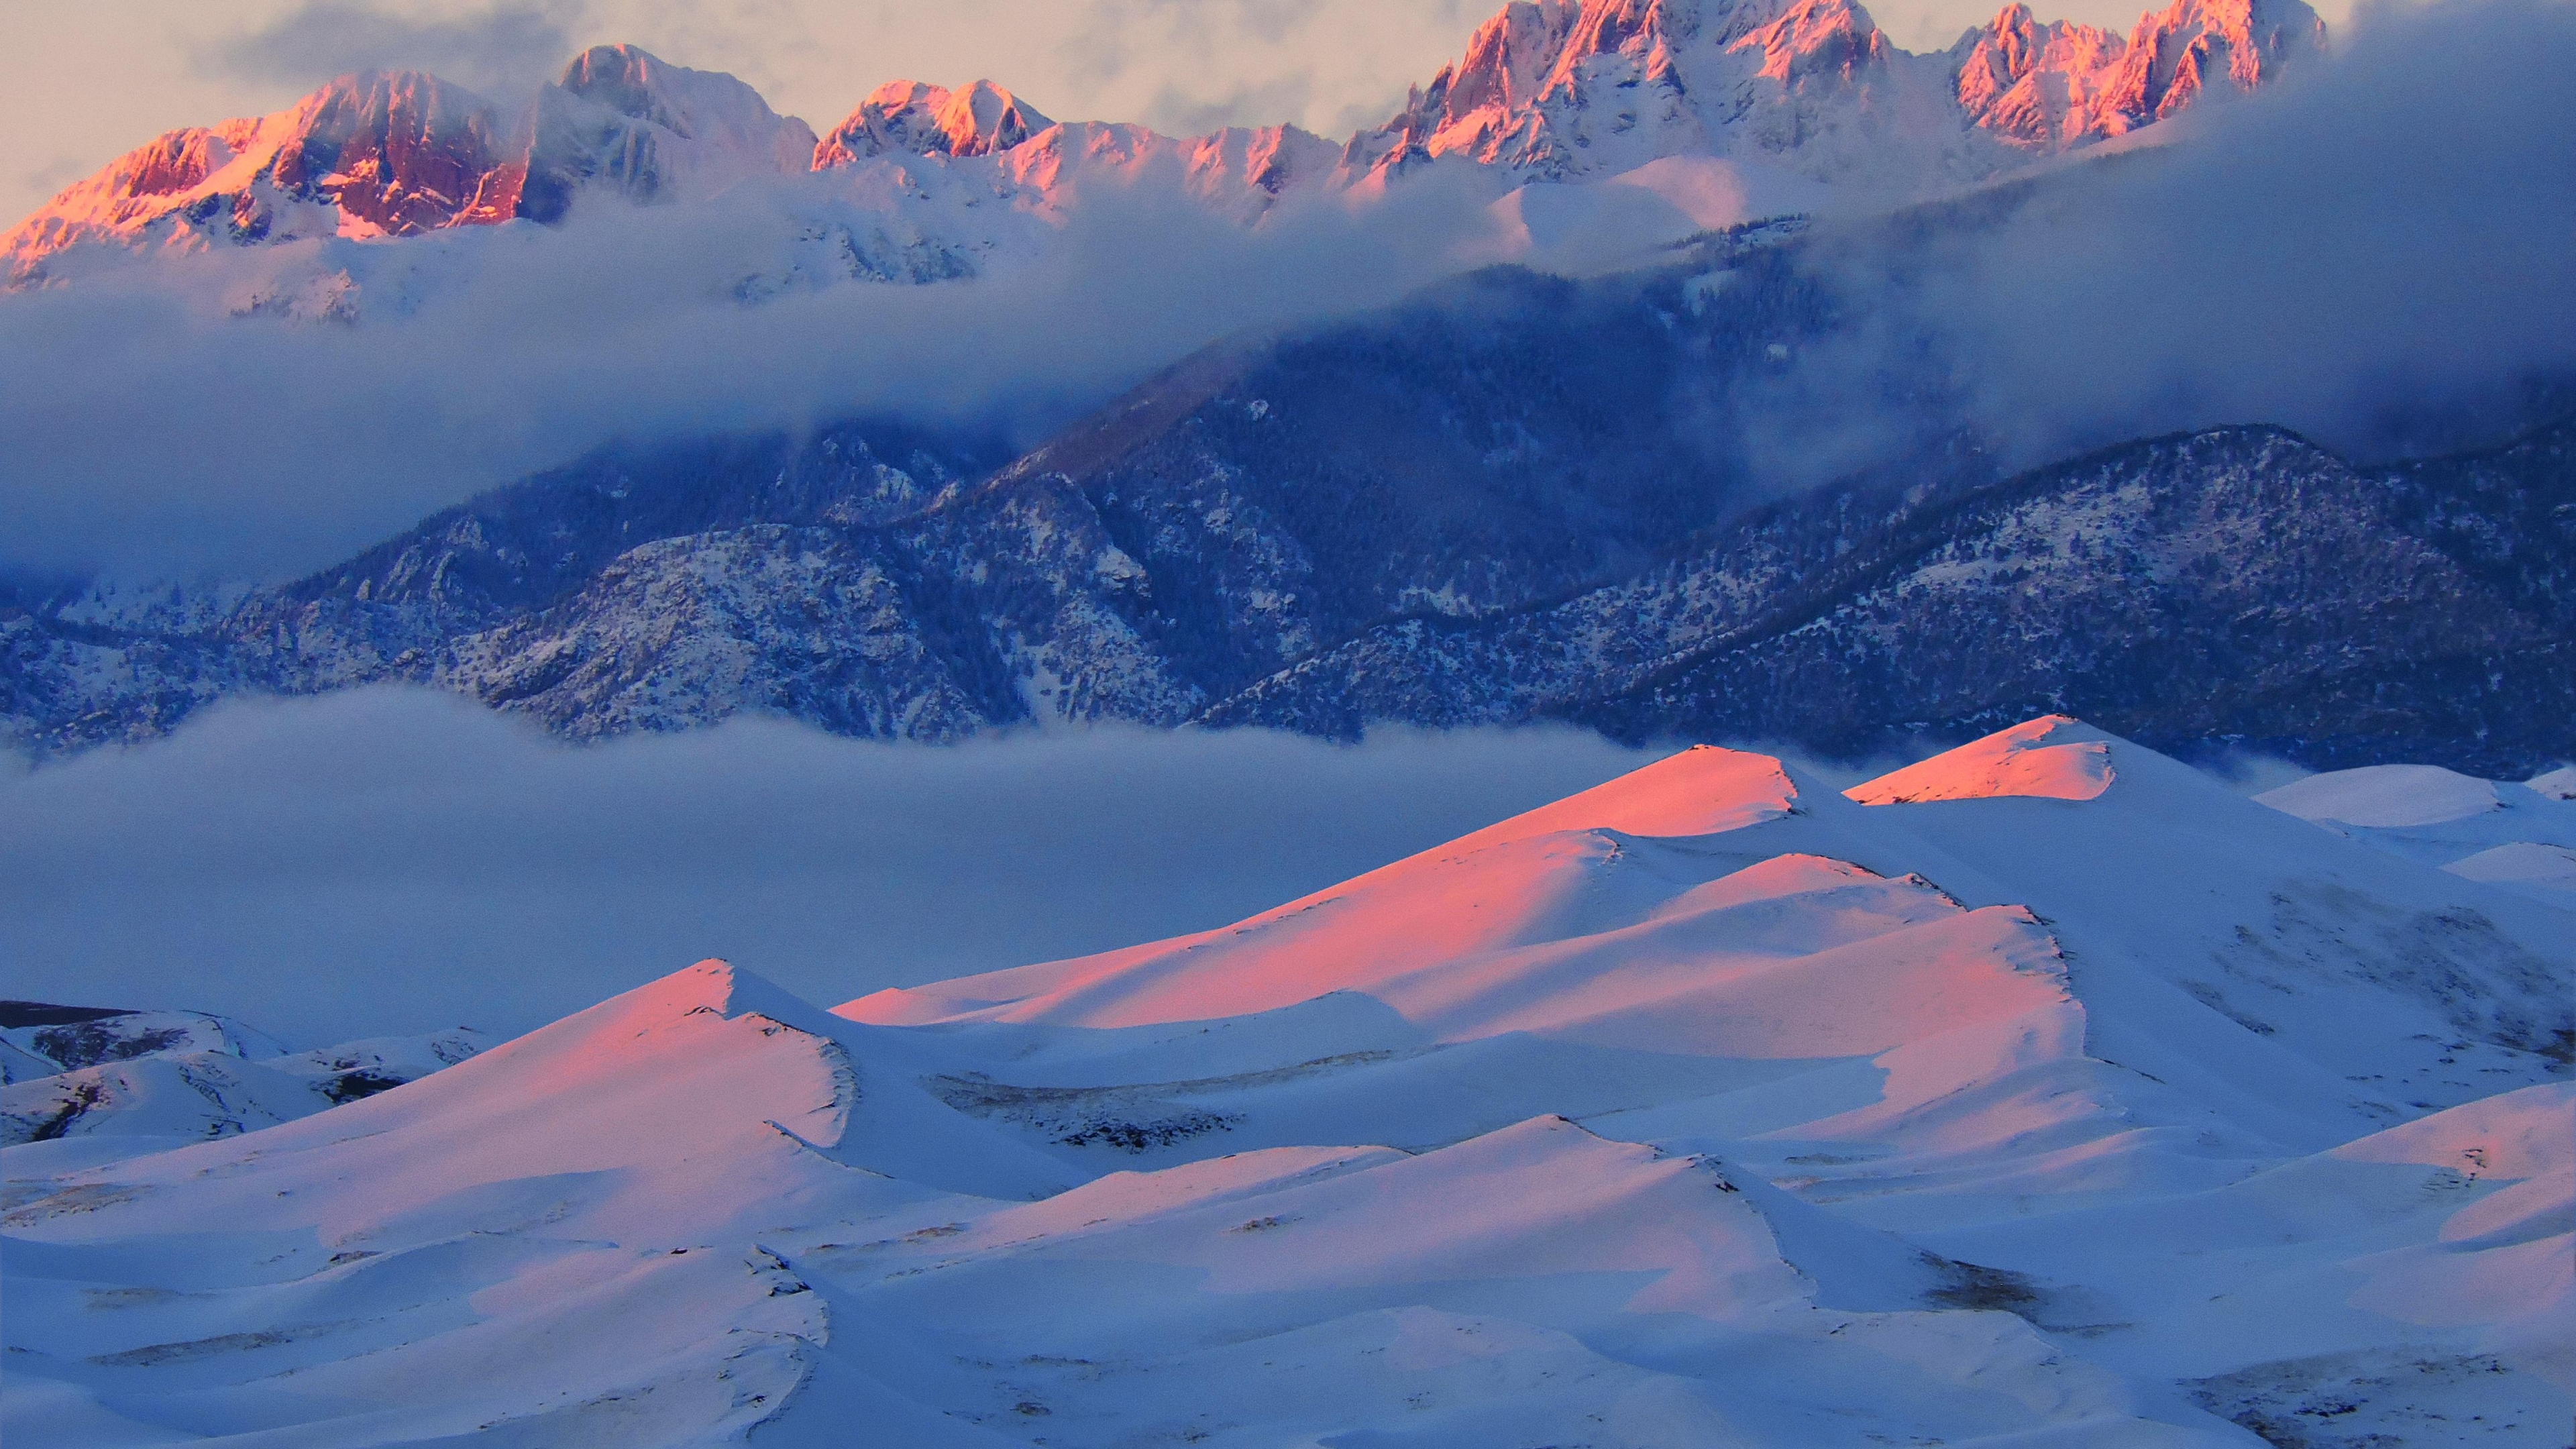 Redish-orange alpenglow lighting up the snow-covered mountains and snow-covered sand dunes at Great Sand Dunes National Park and Preserve